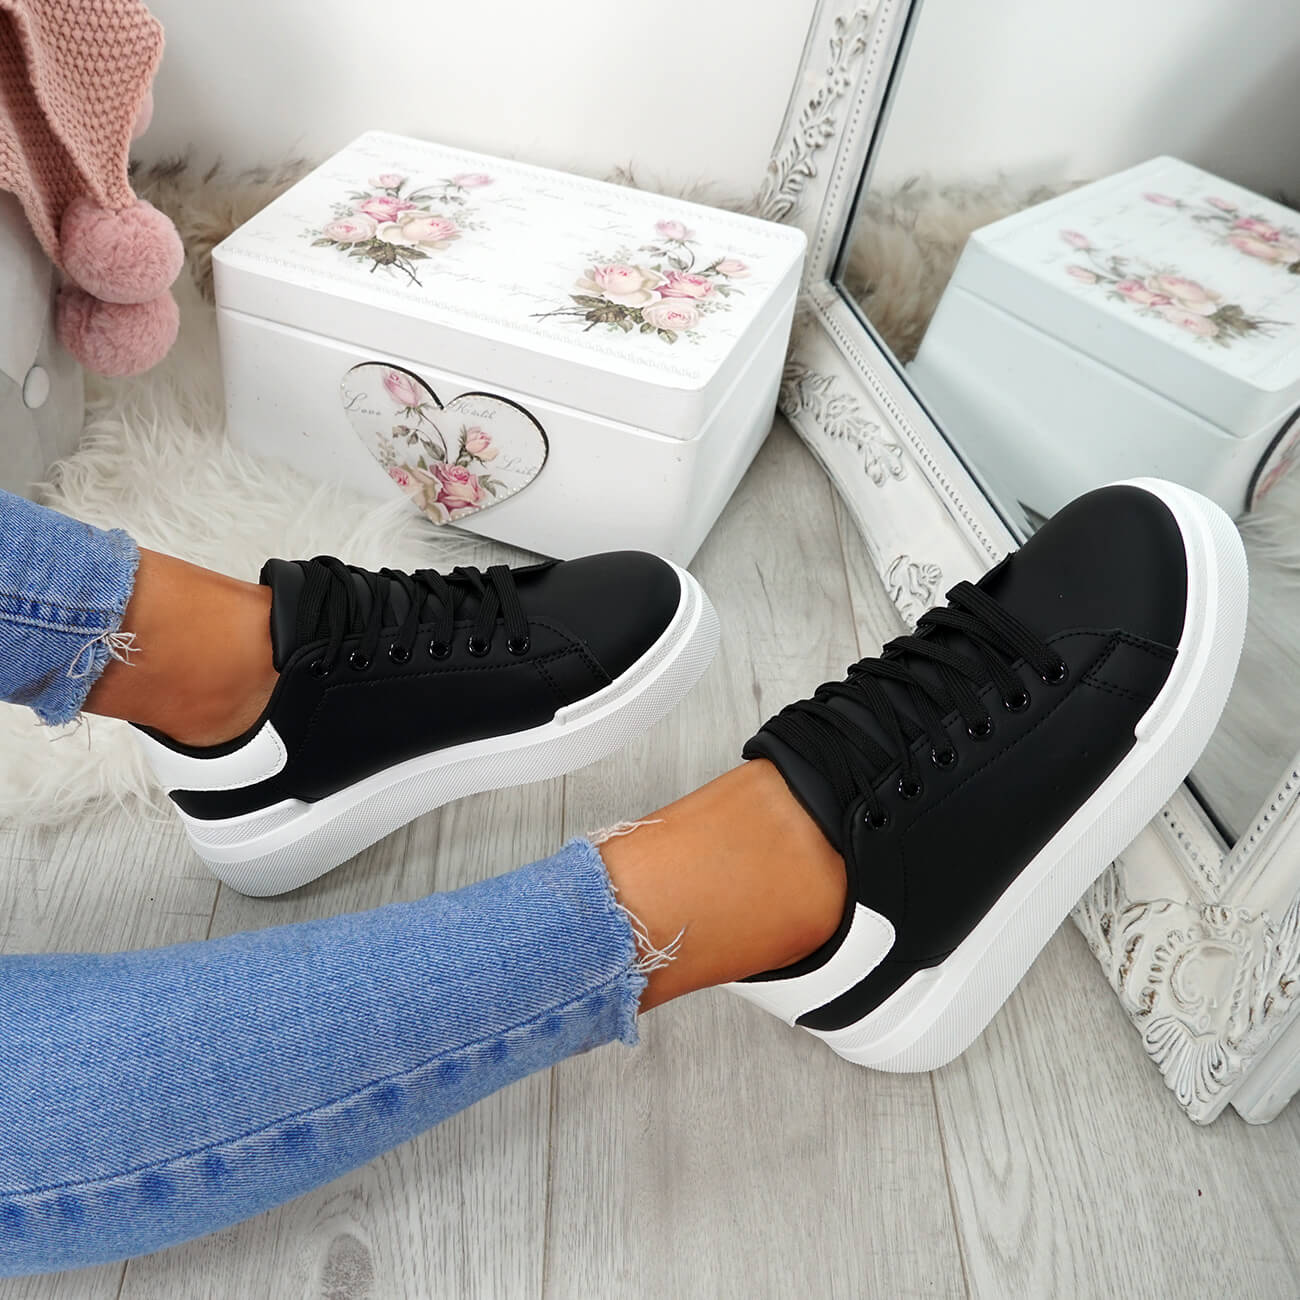 WOMENS-LADIES-LACE-UP-PLIMSOLL-SNEAKERS-CROC-SNAKE-TRAINERS-CASUAL-SHOES-SIZE thumbnail 14